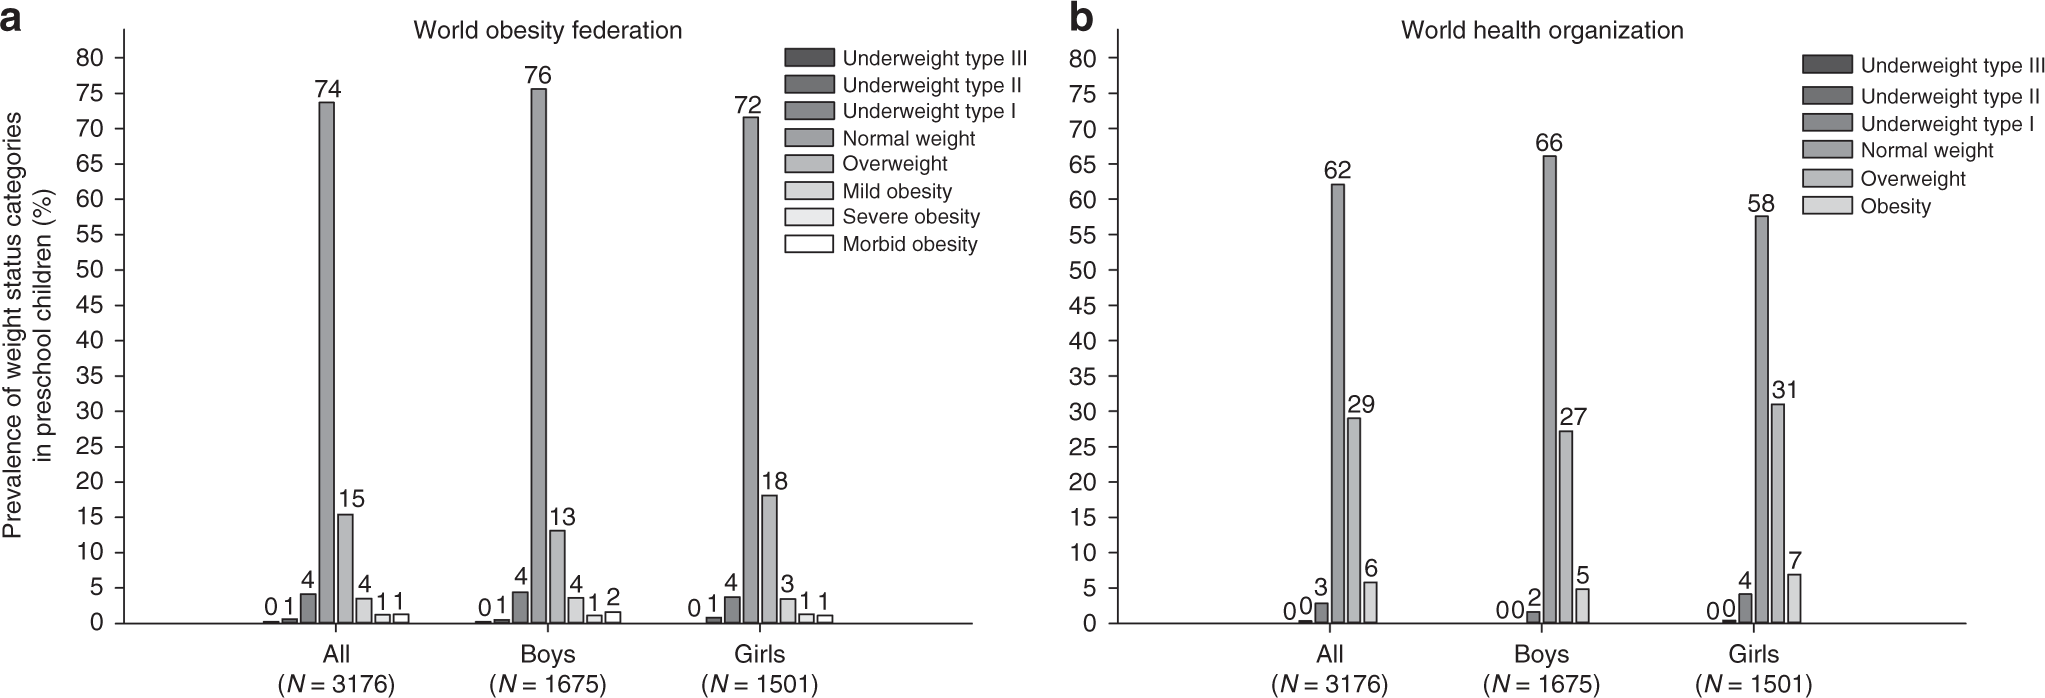 Prevalence of severe/morbid obesity and other weight status and